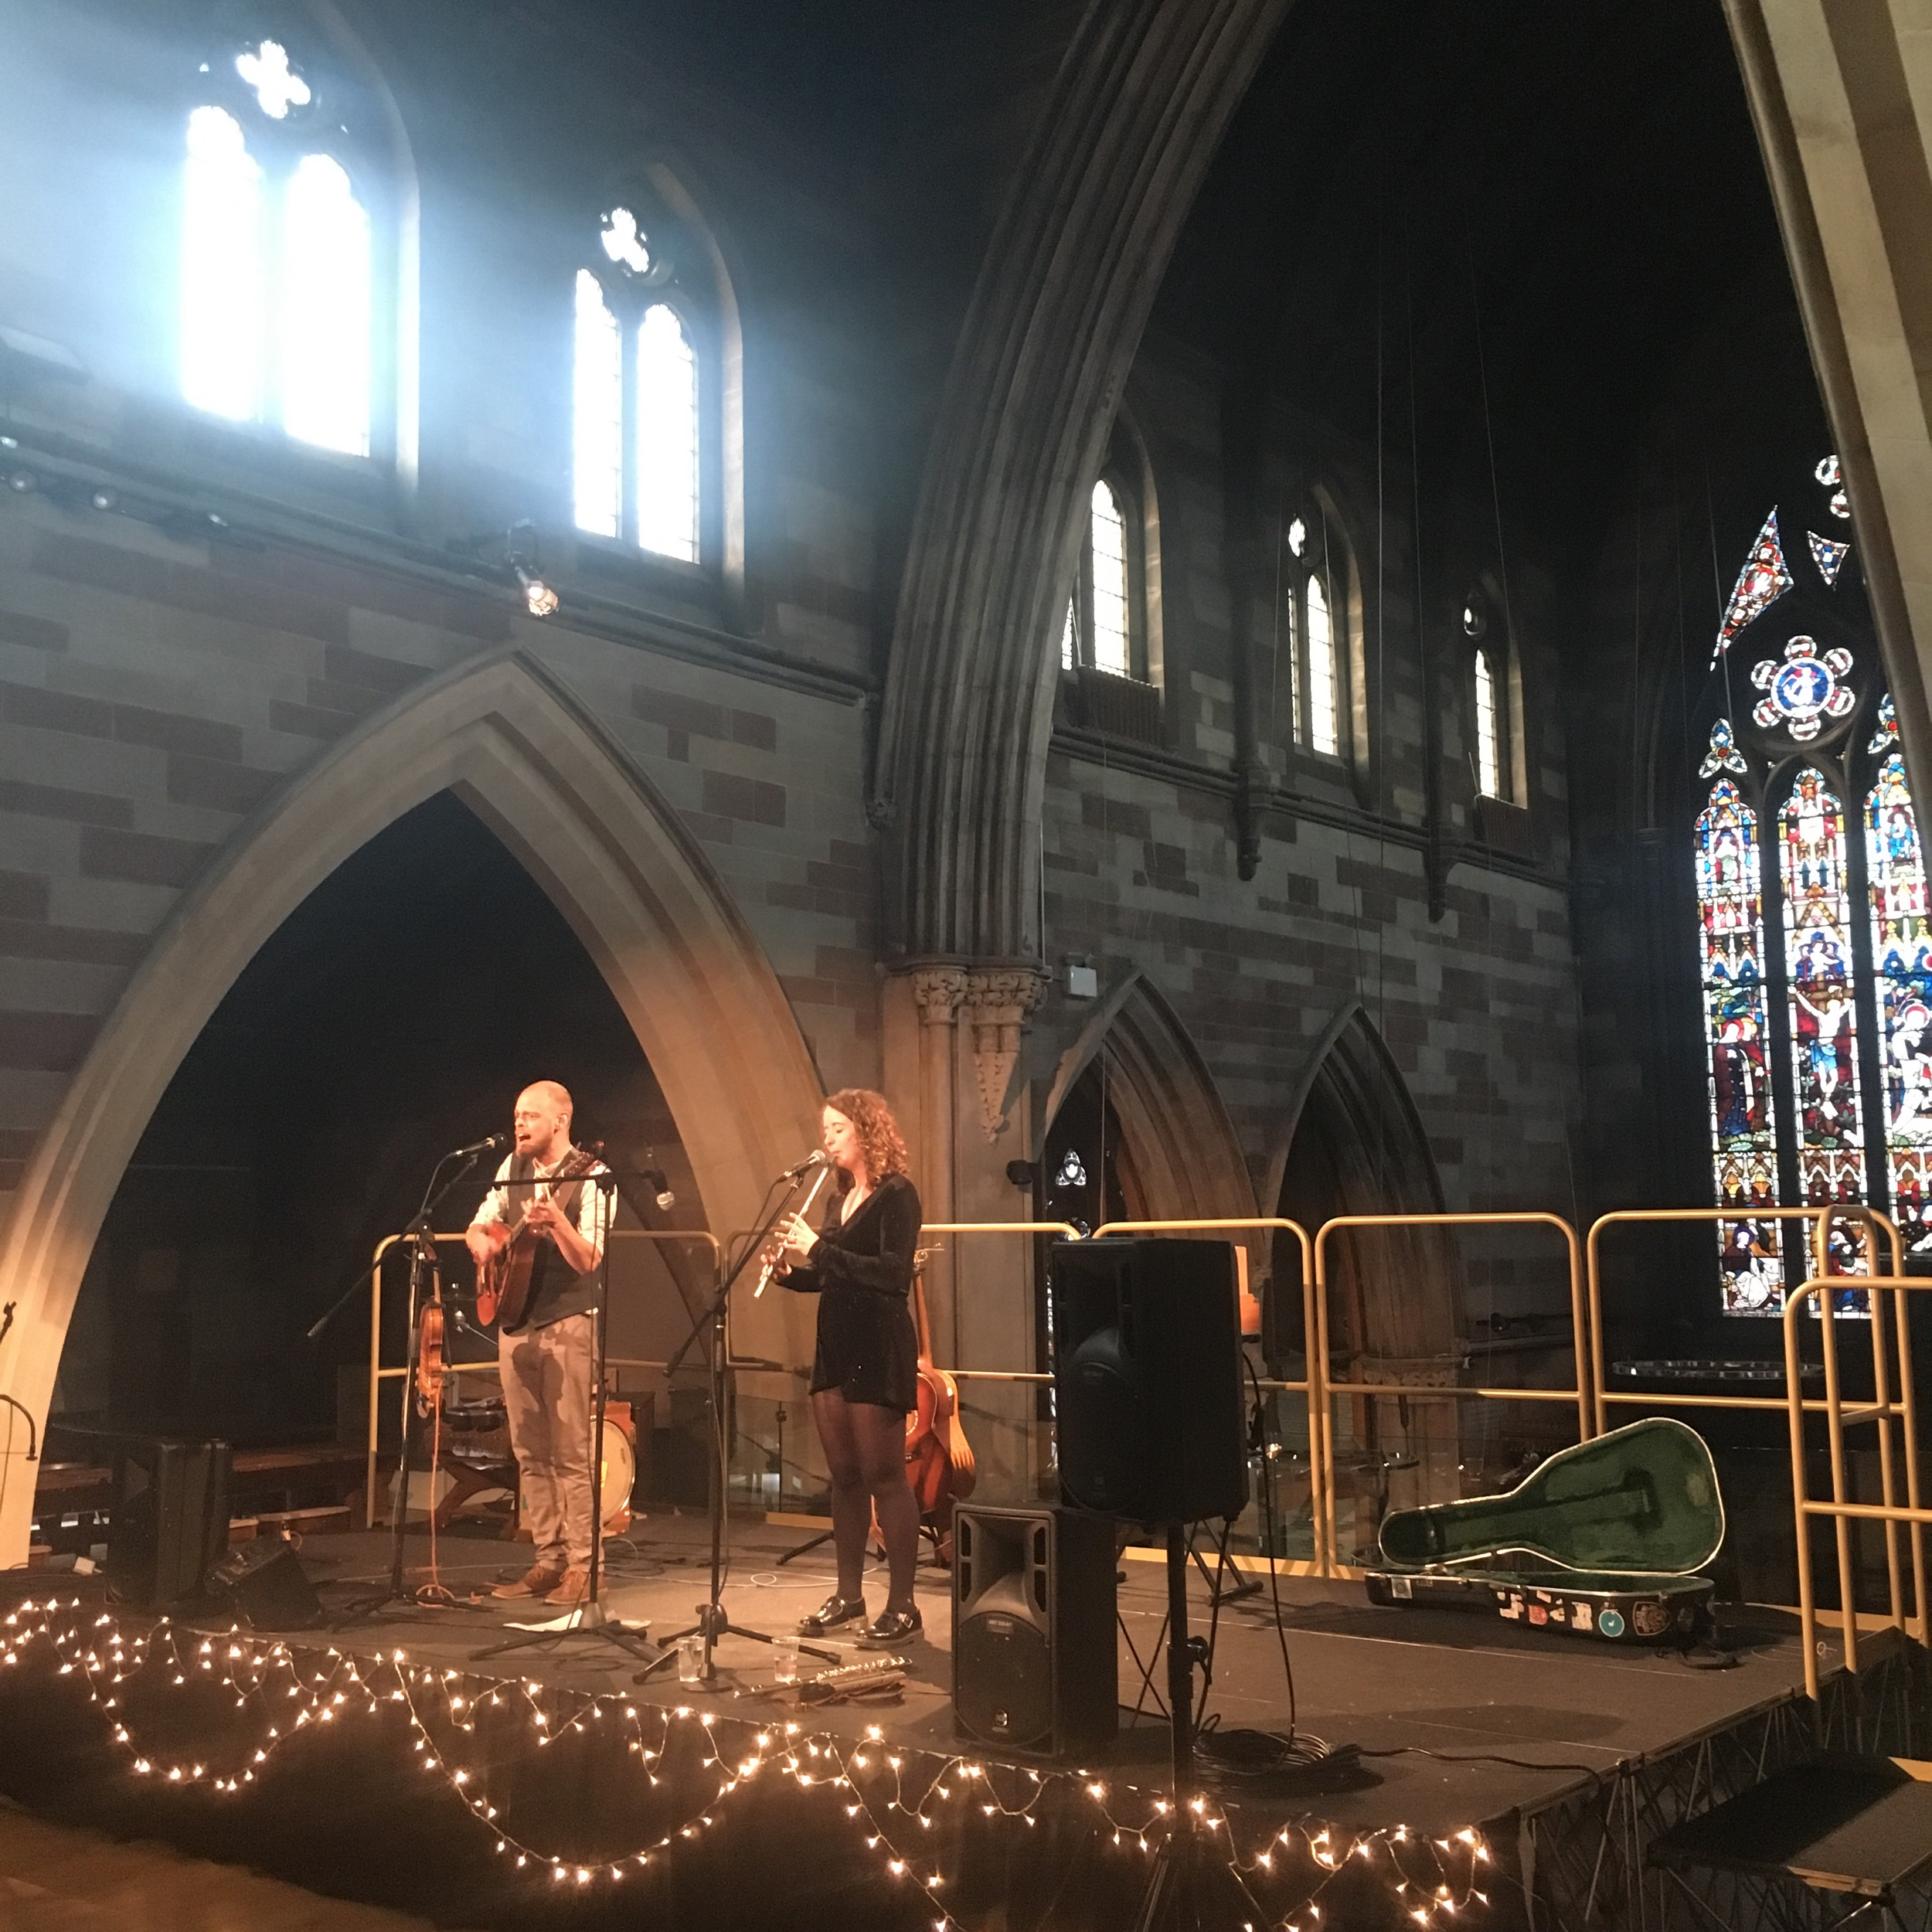 Chris Elliott and Caitlin Jones at our farewell concert in Lichfield